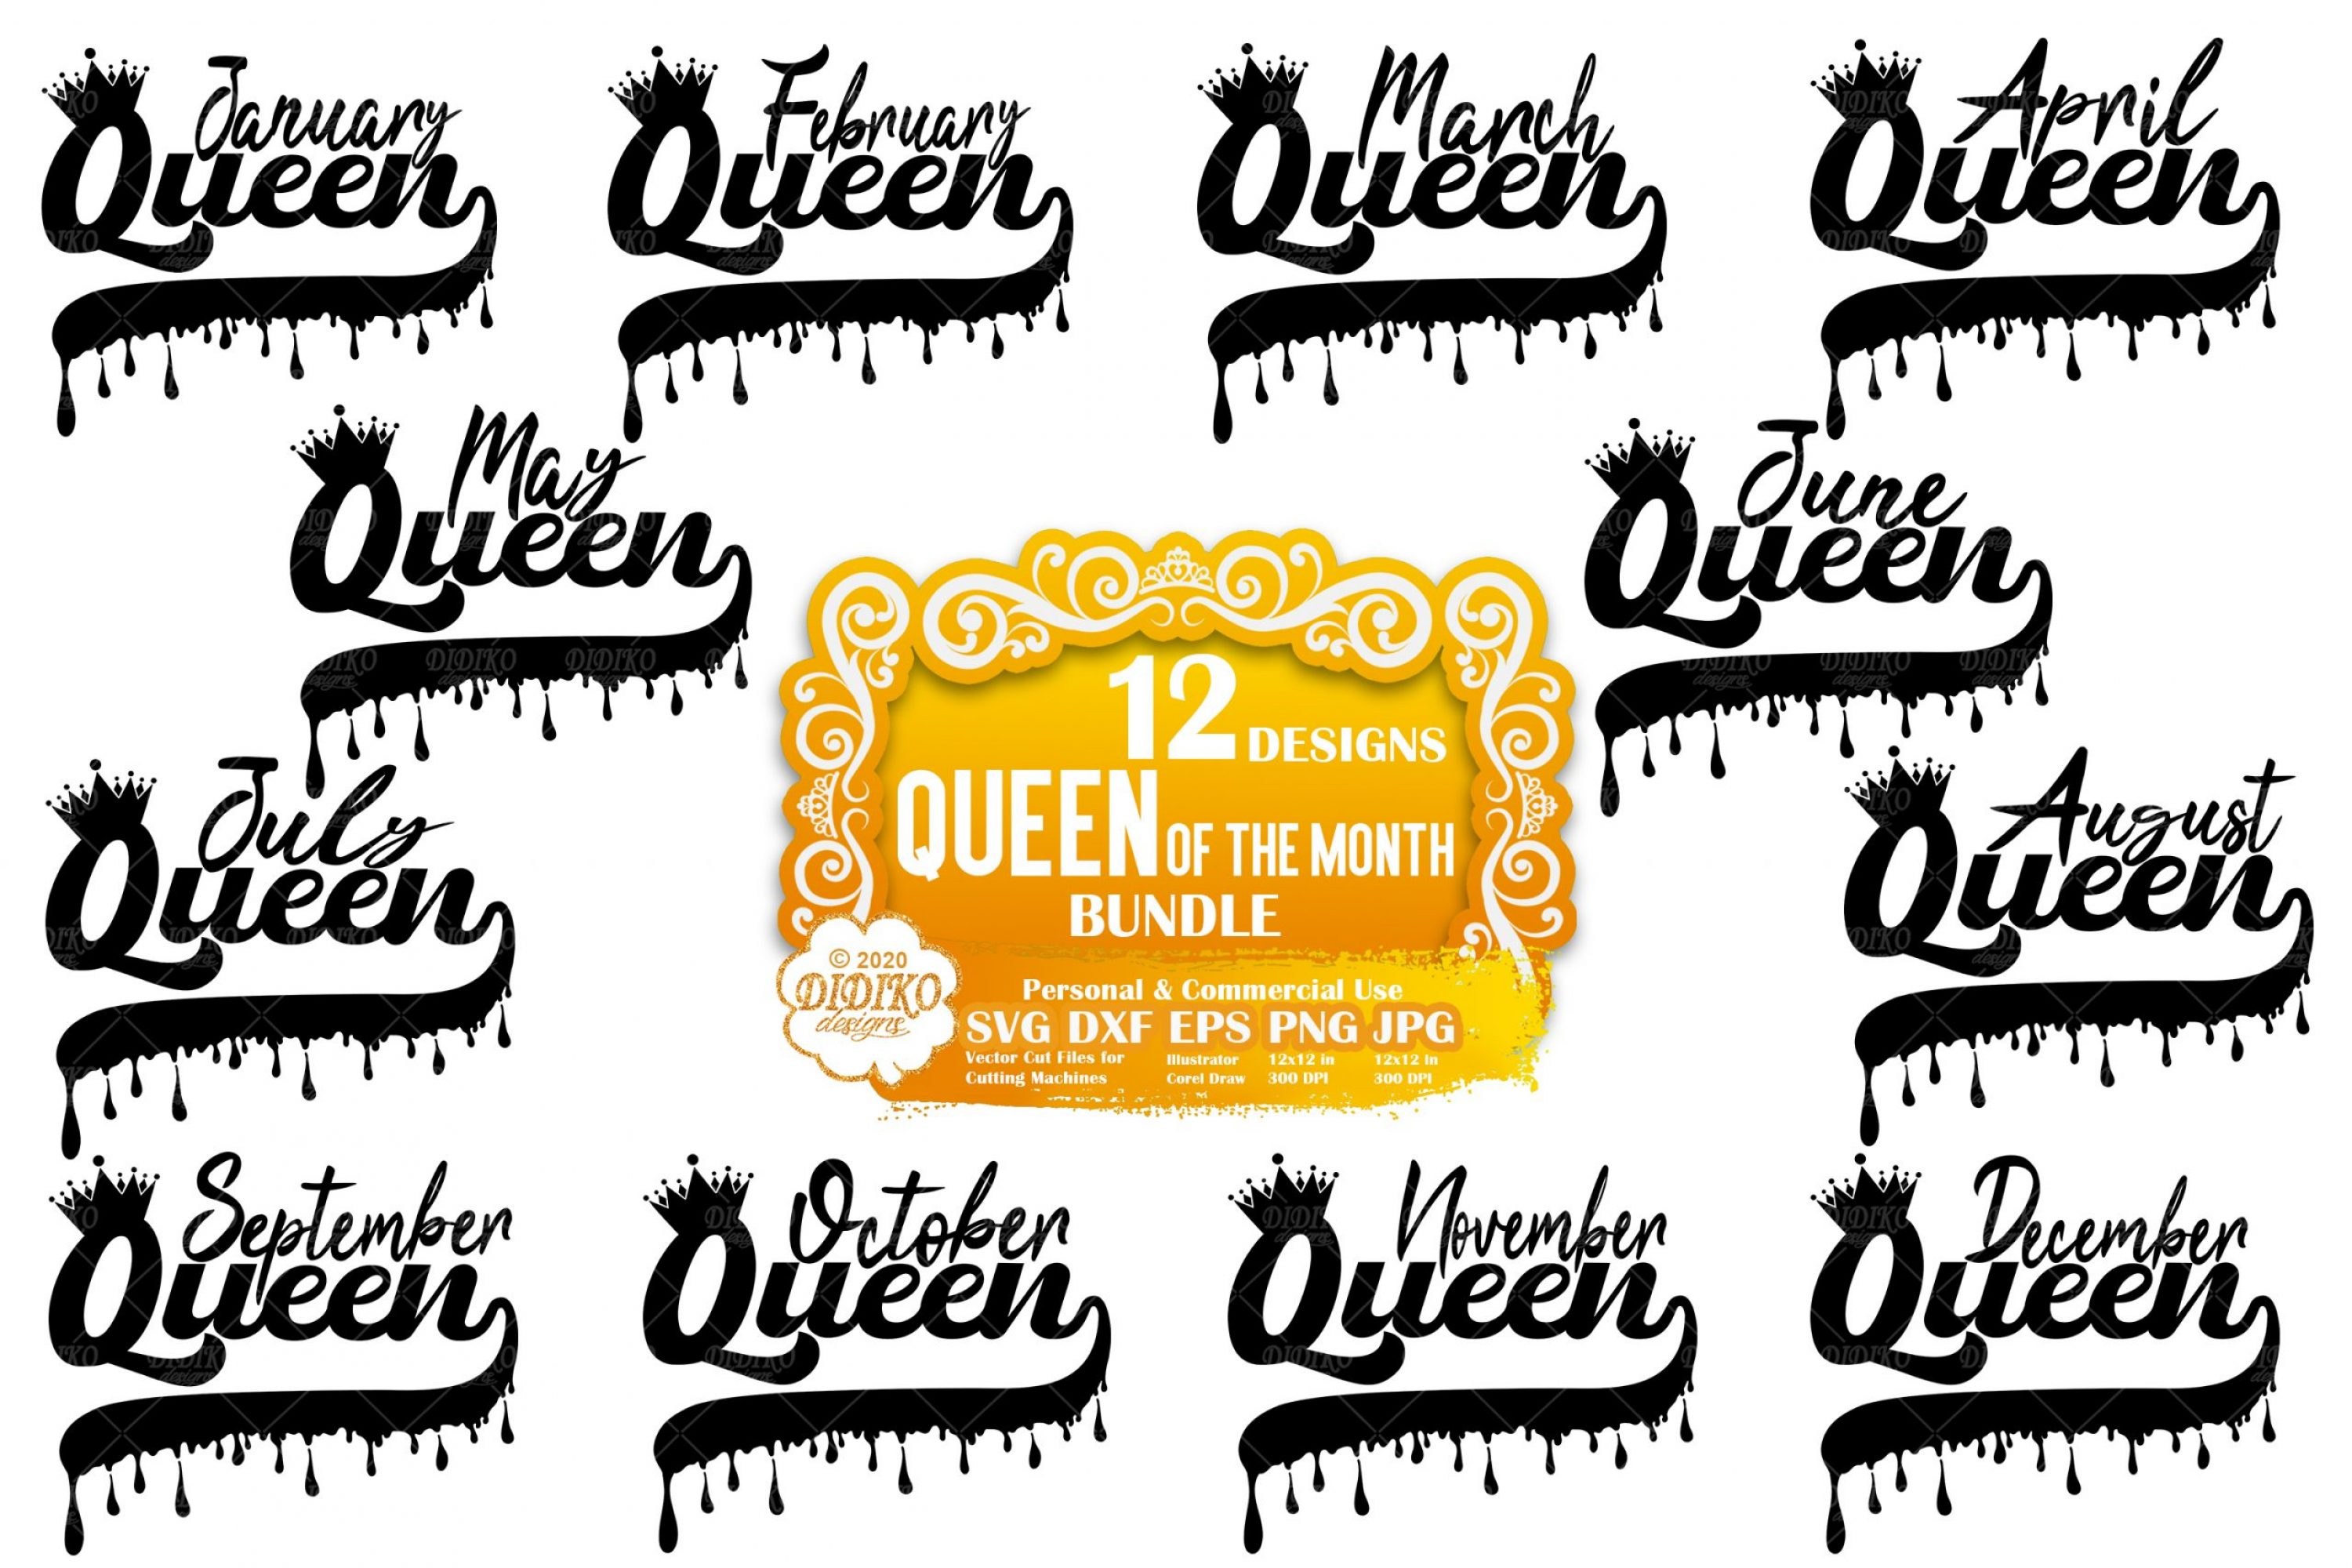 Black Woman SVG Bundle #4 | Black Queen SVG Files